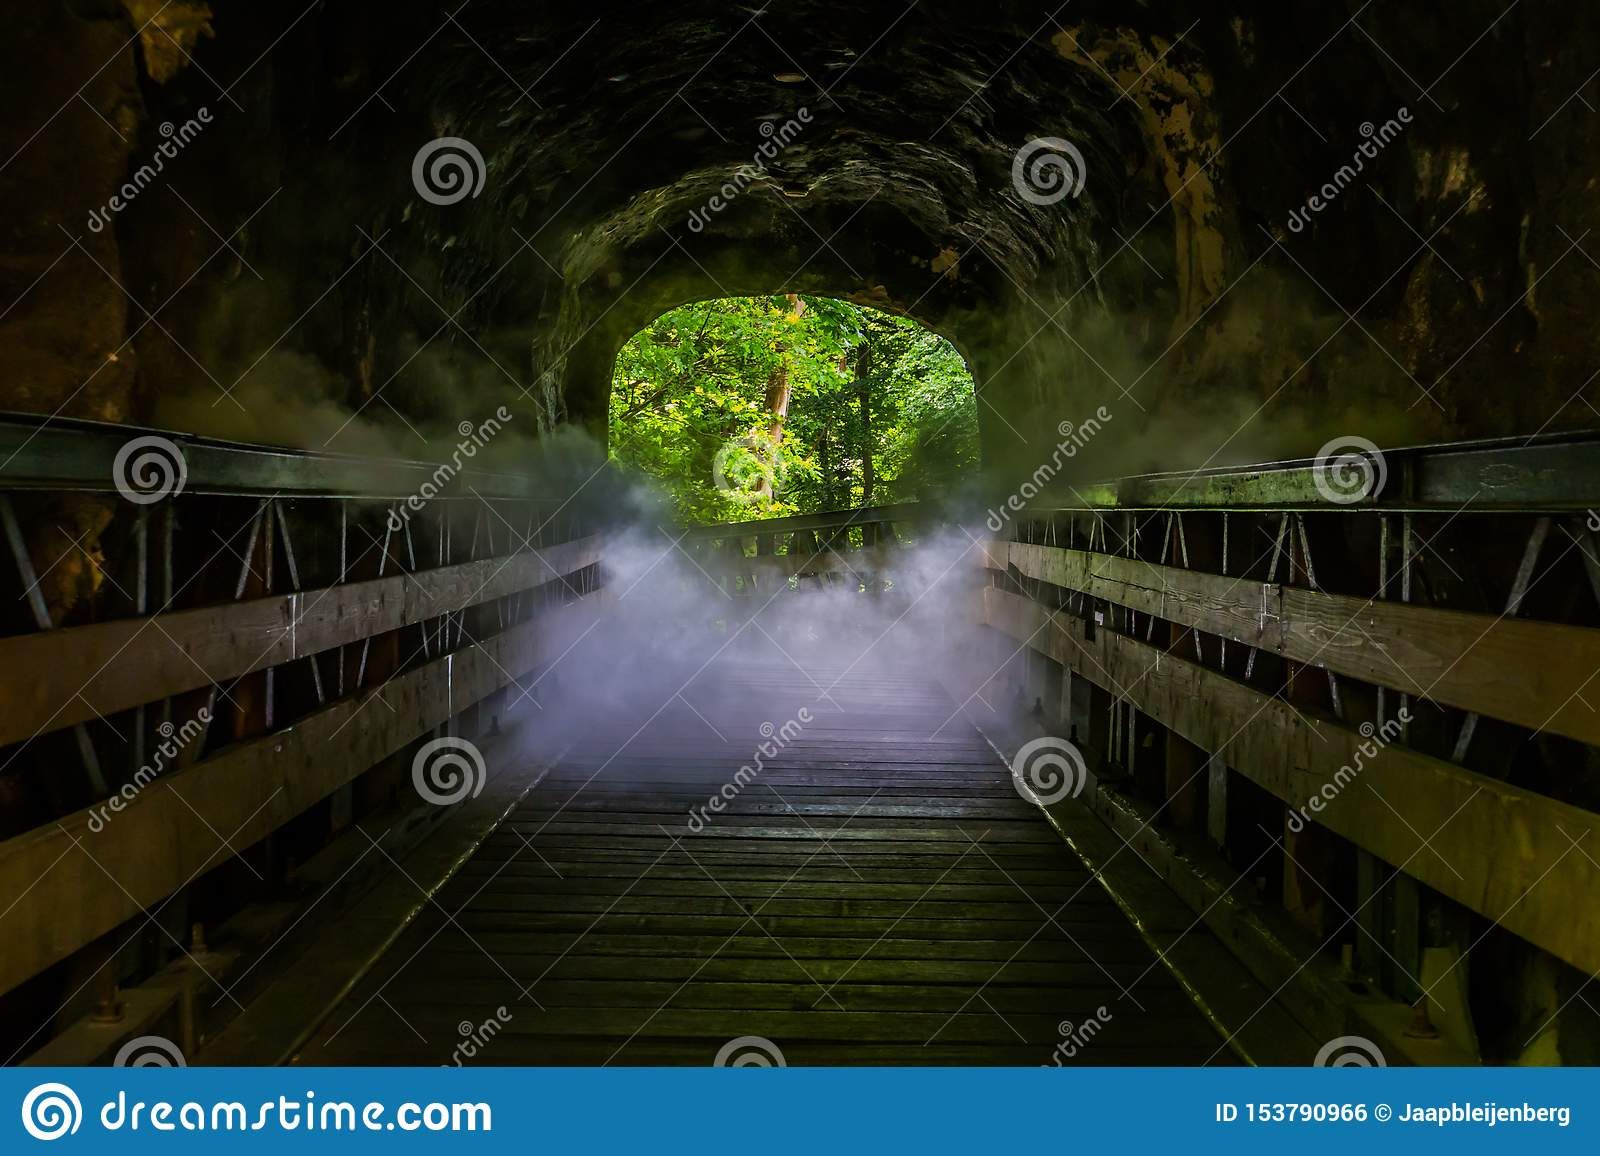 Walking path with scary smoke effect, creepy looking halloween cave, misty den, horror scenery